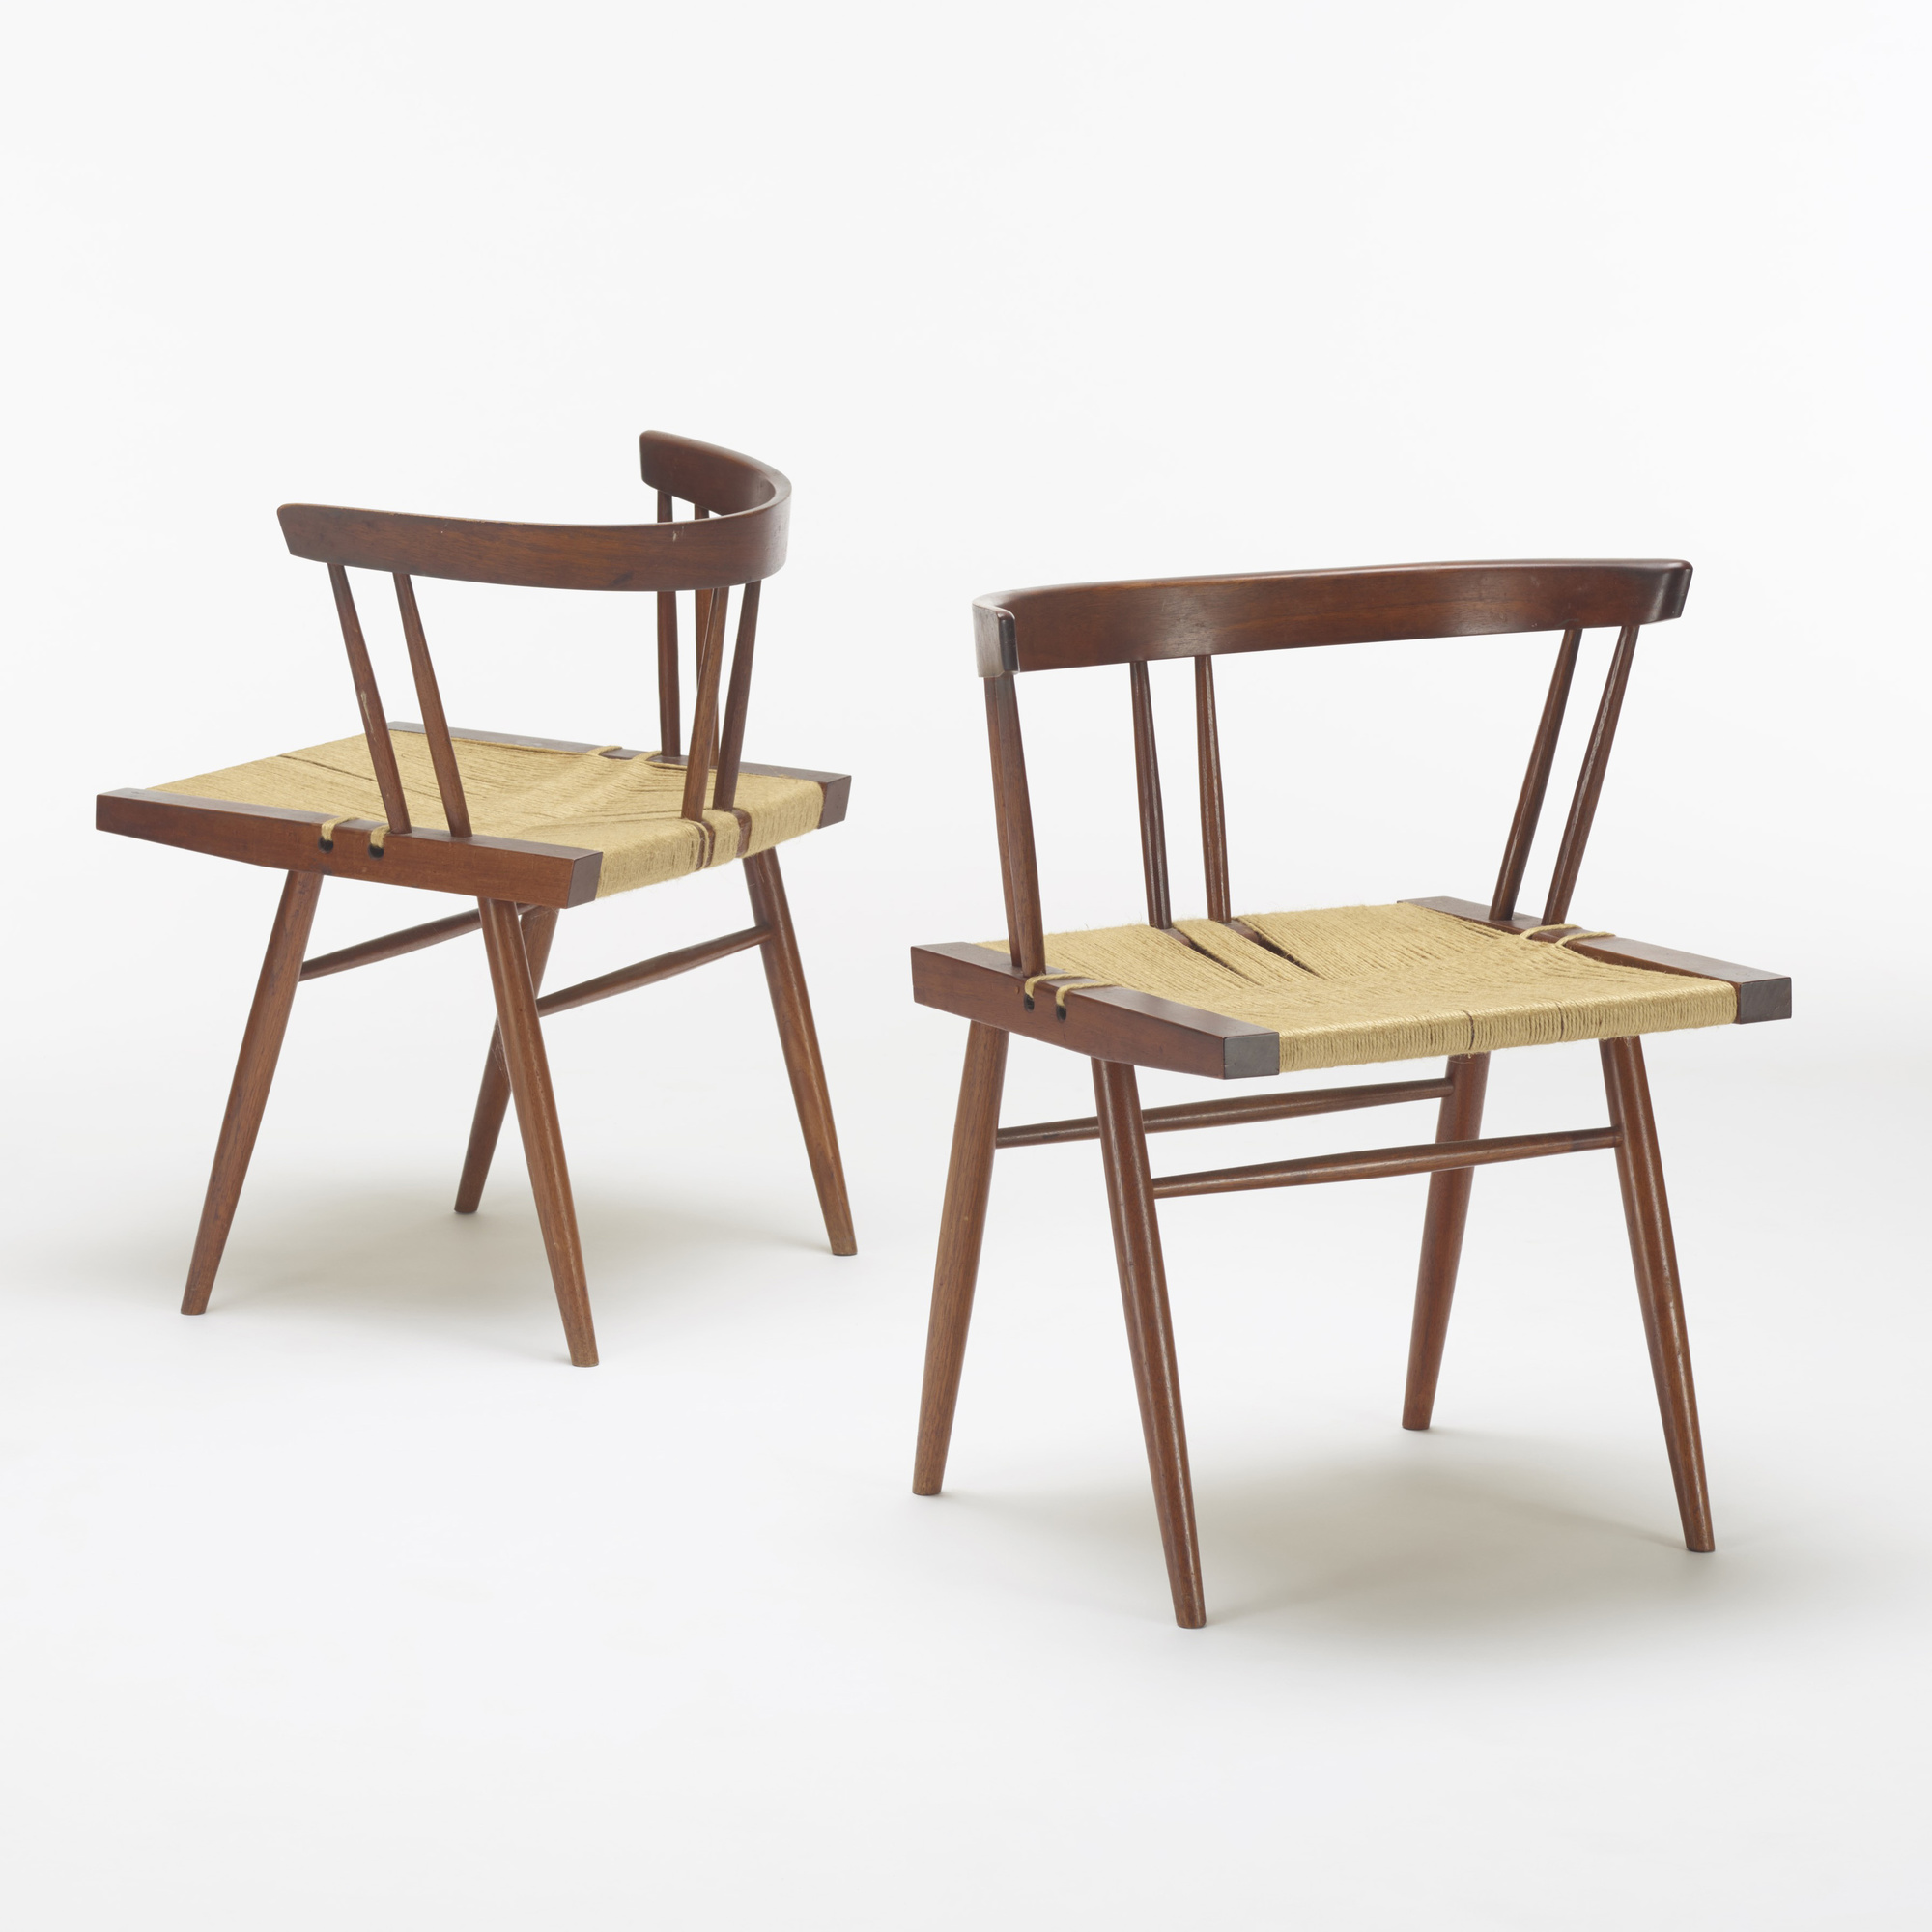 132: George Nakashima / Grass-Seated chairs, set of six (3 of 3)